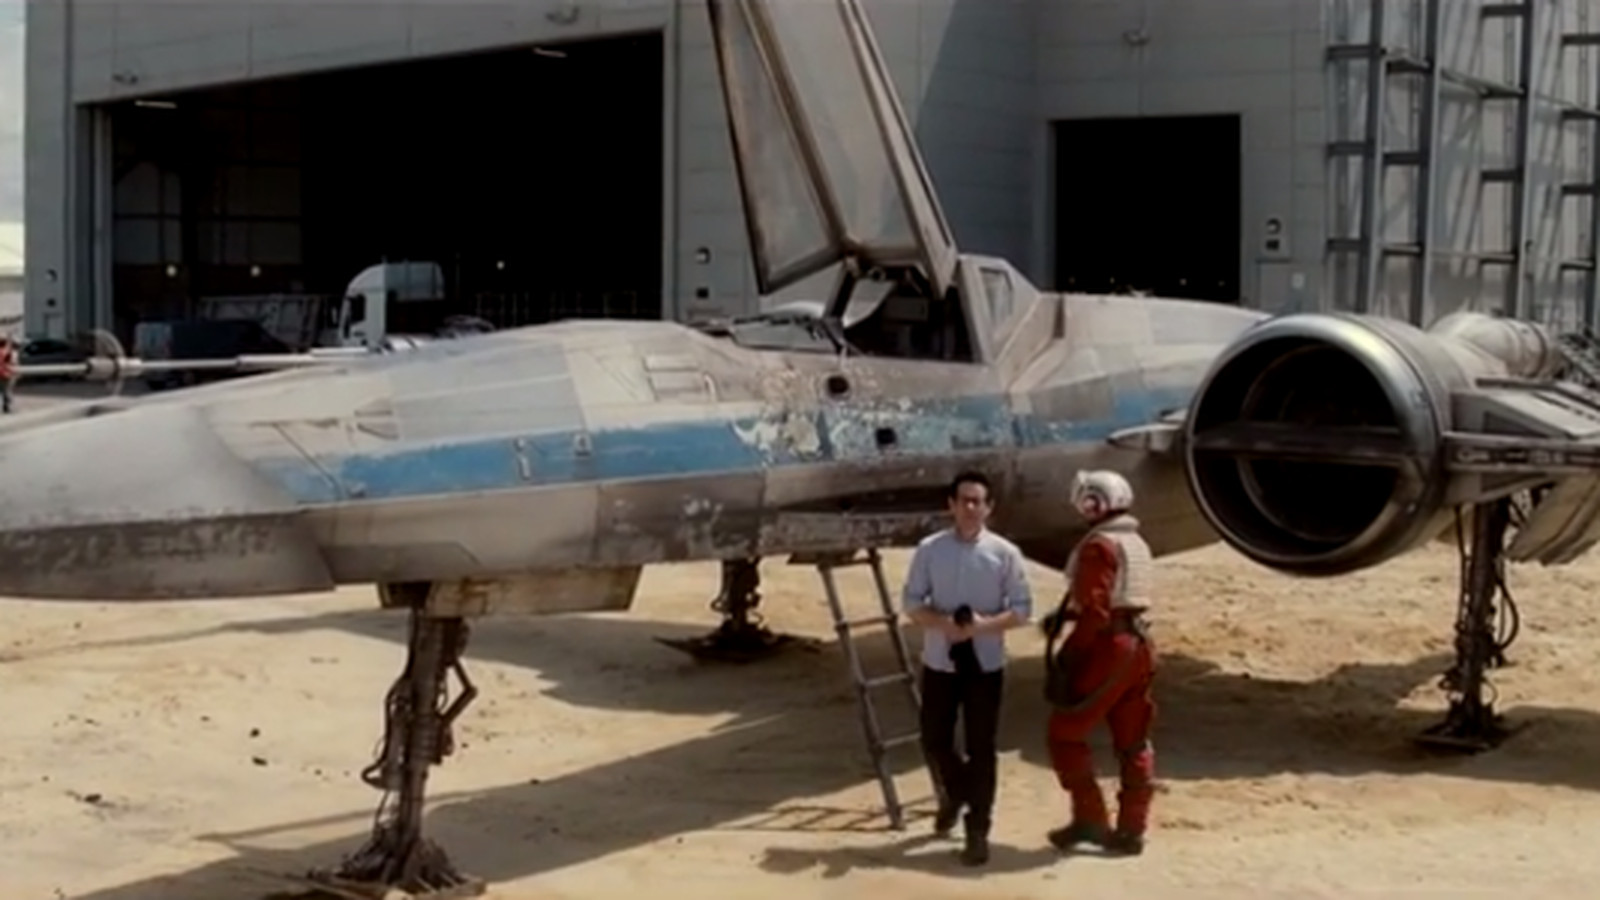 This Is The New X Wing Fighter From Star Wars Episode